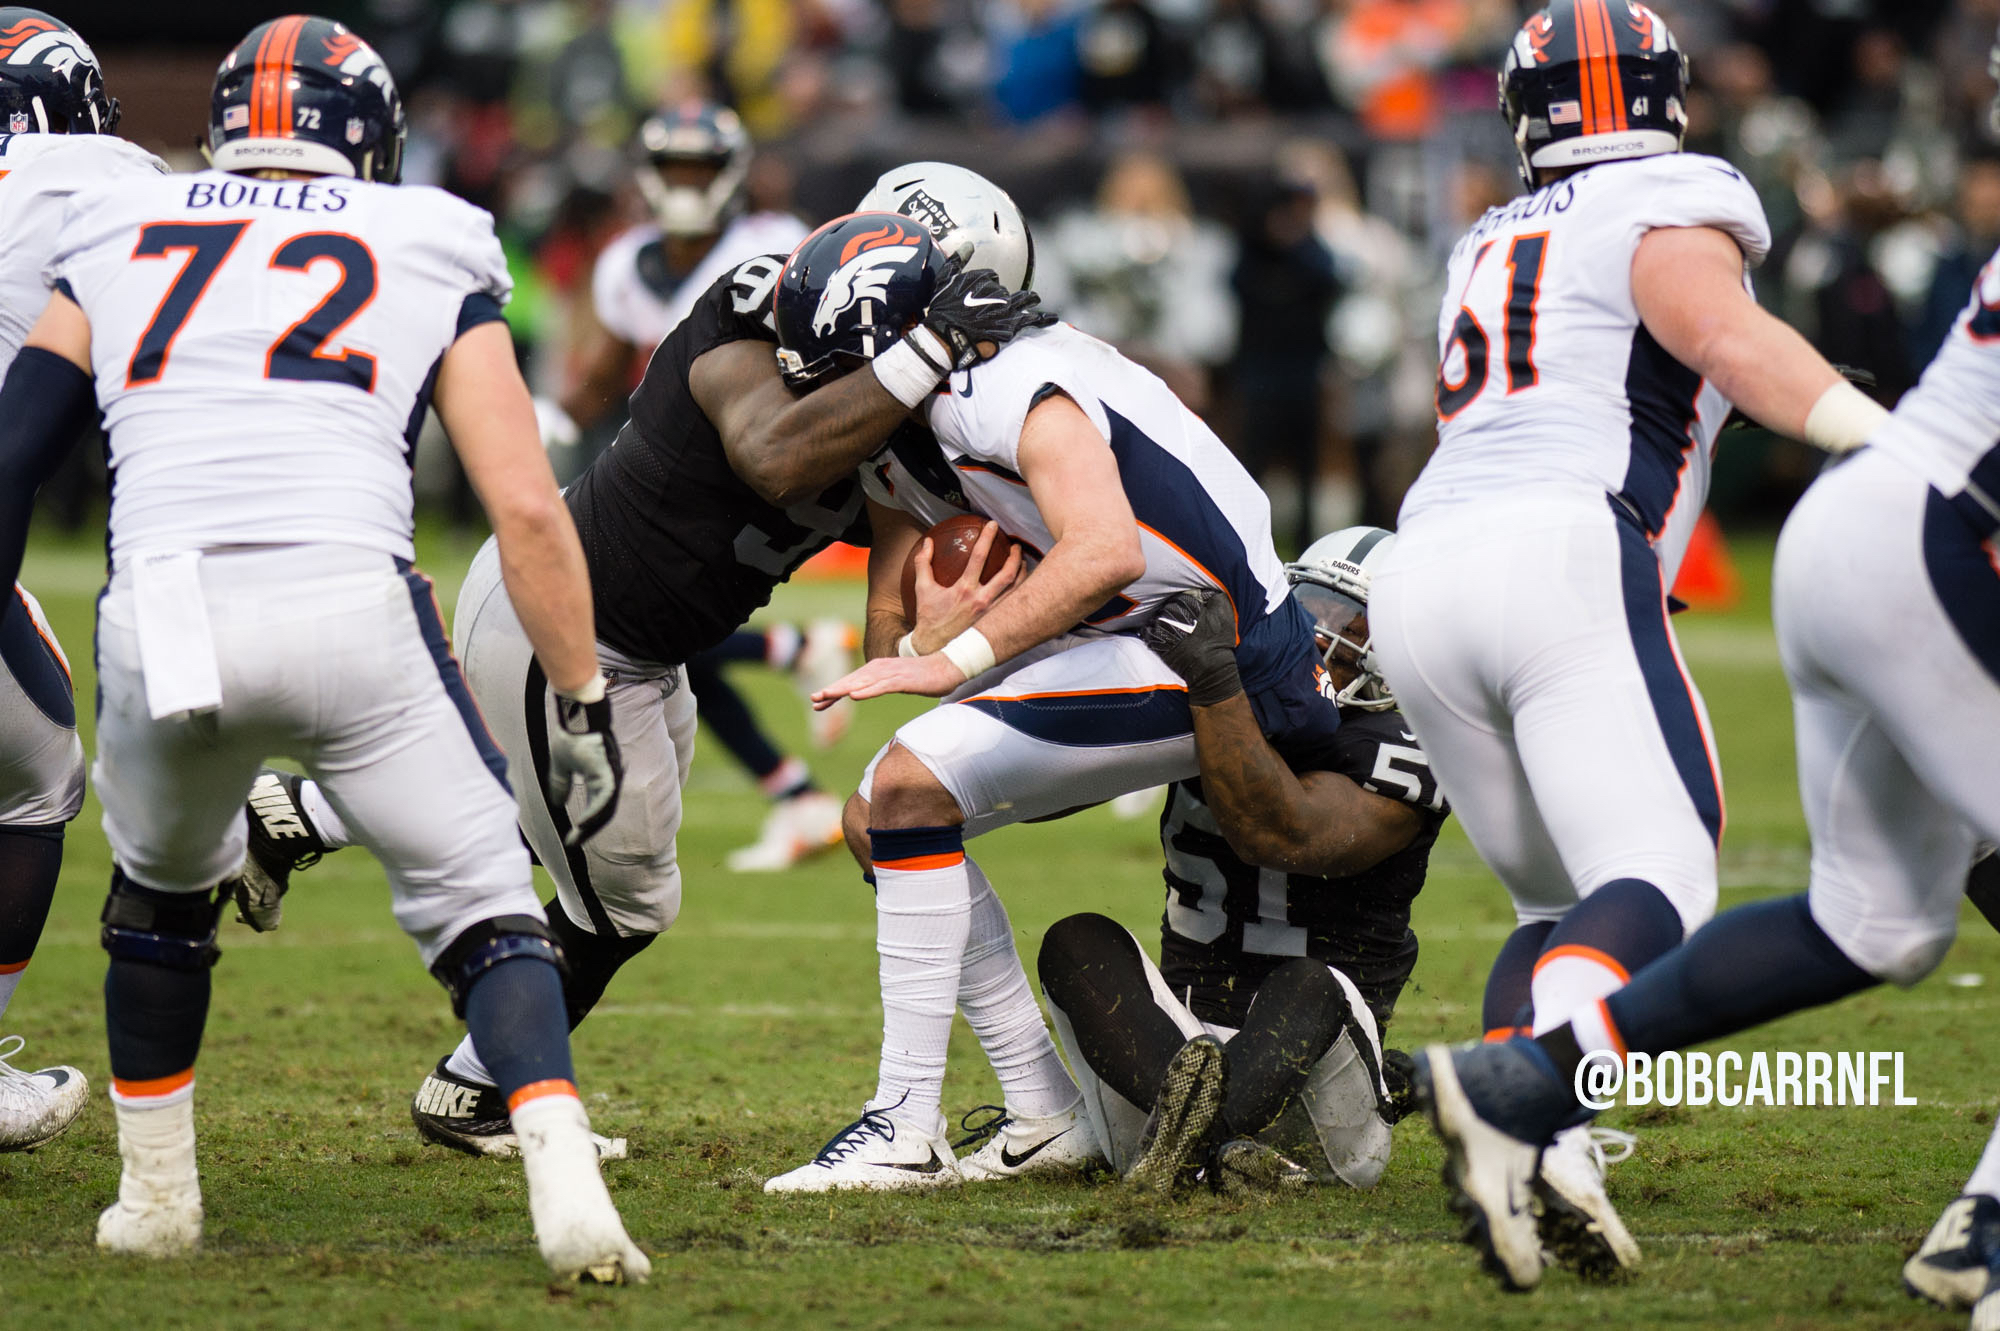 Raiders stay in playoff hunt with win over Broncos